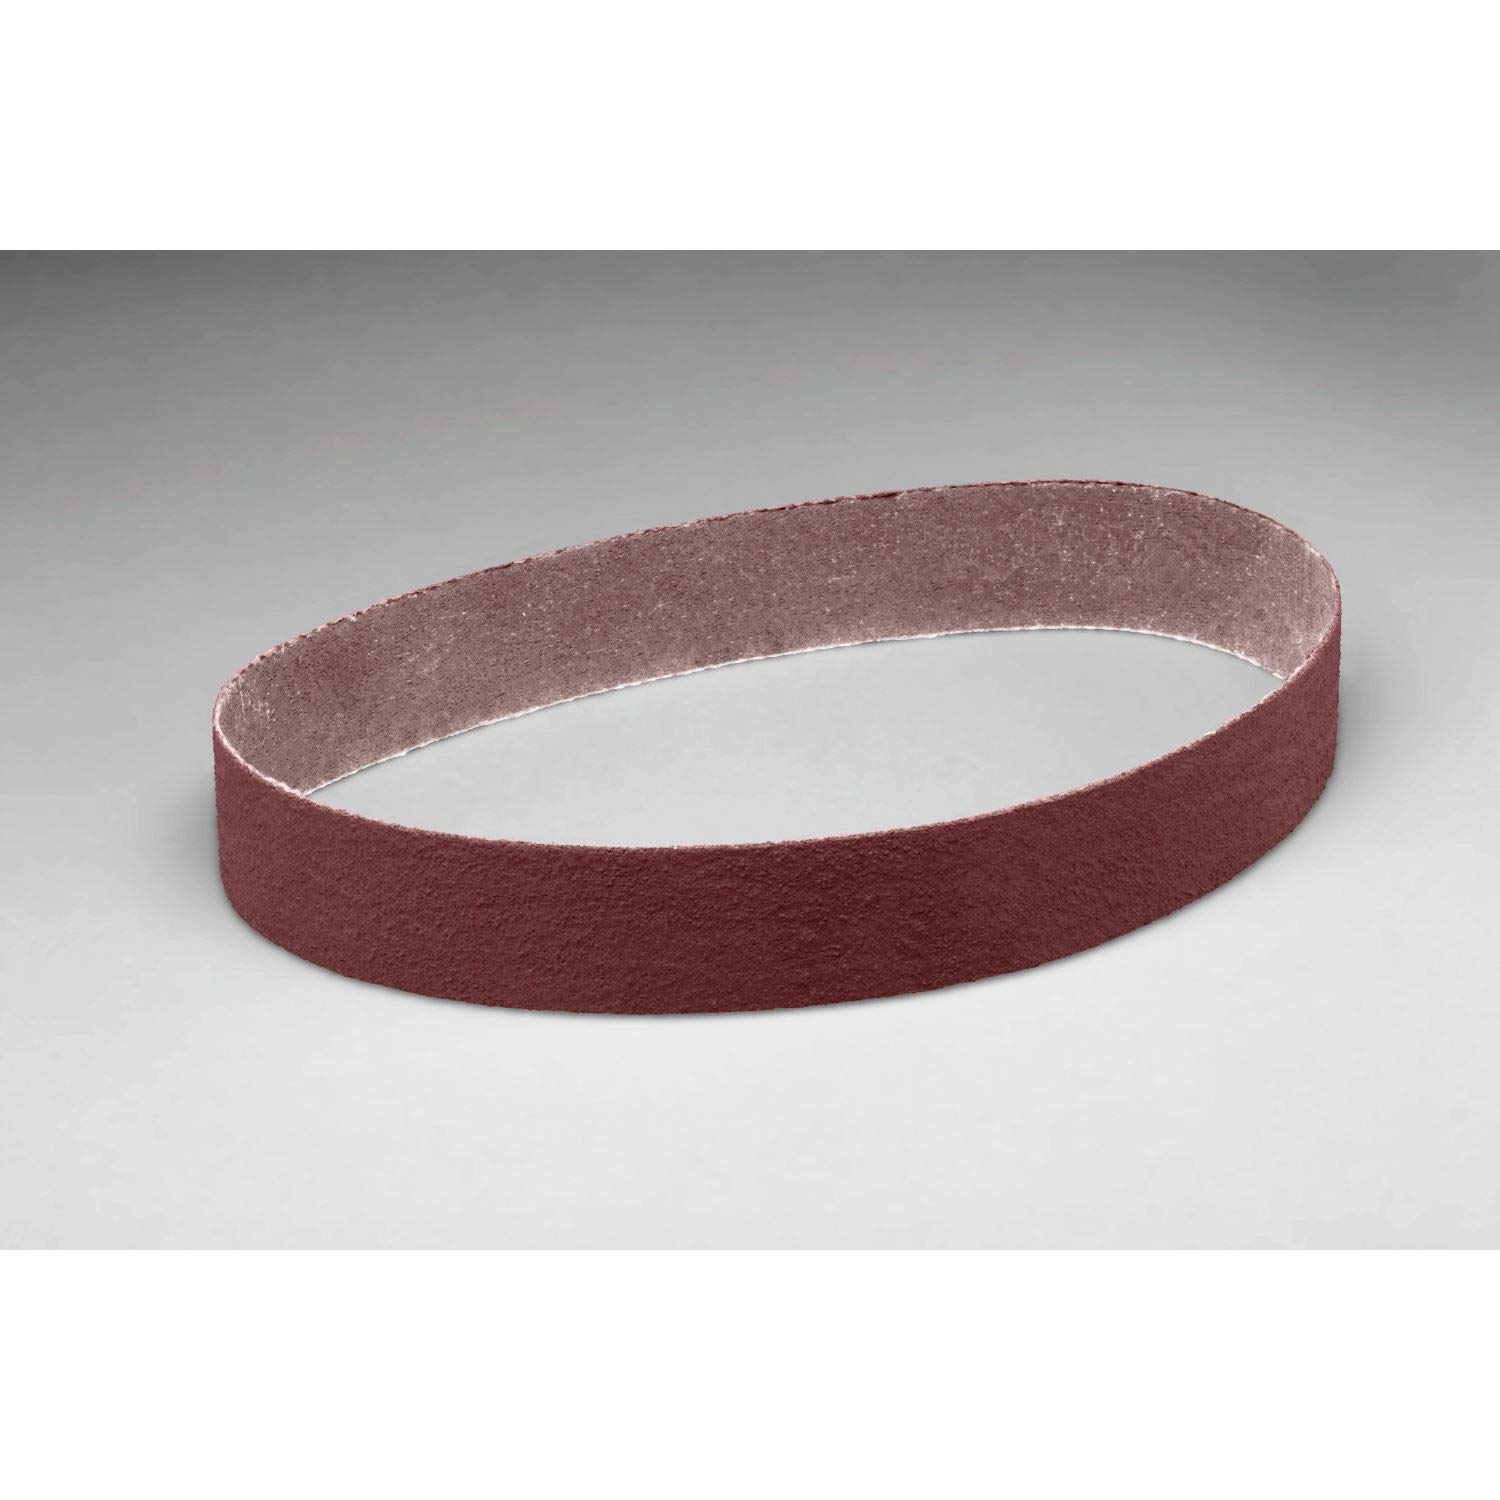 3M Cloth Belt 341D, P400 X-weight, 2 in x 72 in, Film-lok, Single-flex